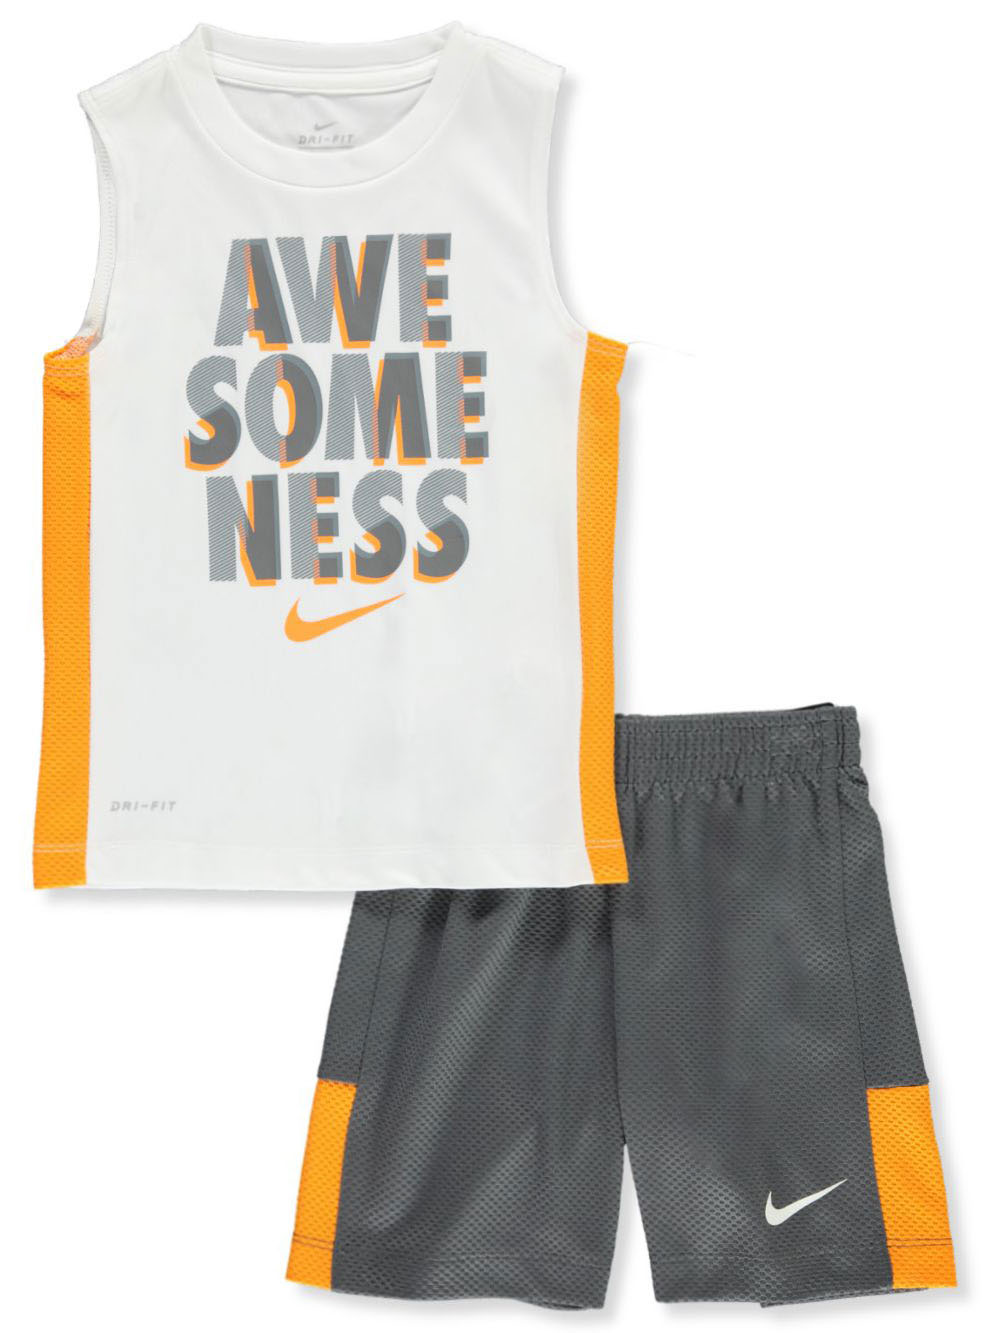 Boys' Awesomeness 2-Piece Shorts Set Outfit